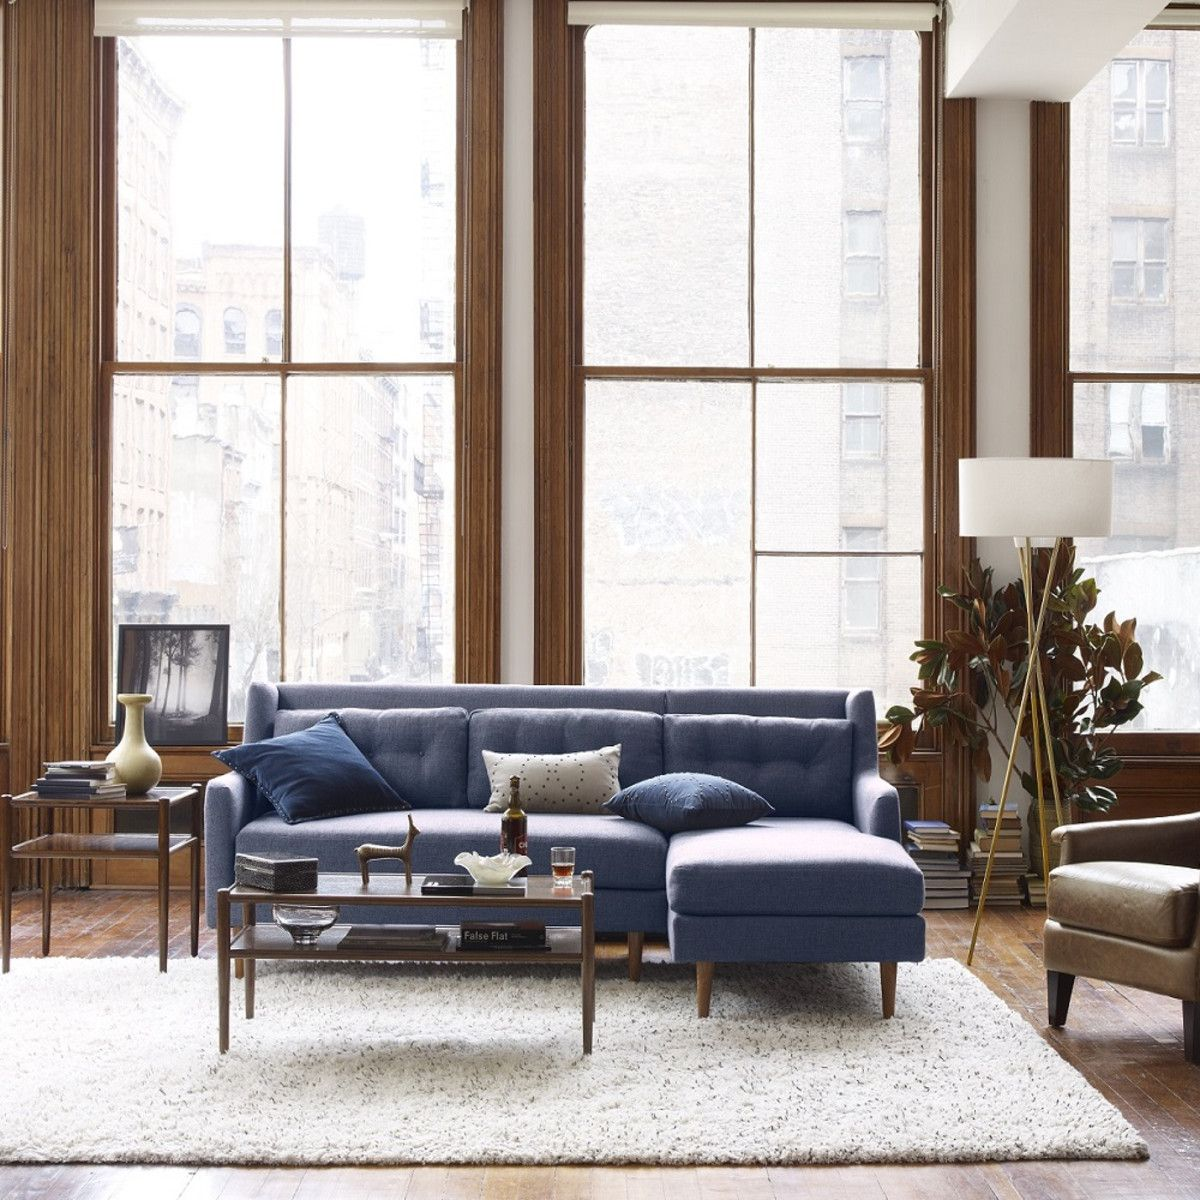 west elm furniture reviews. Nice West Elm Couch Reviews , New 45 For Sofa Room Ideas With Http://sofascouch.com/west-elm-couch- Reviews/ Furniture S